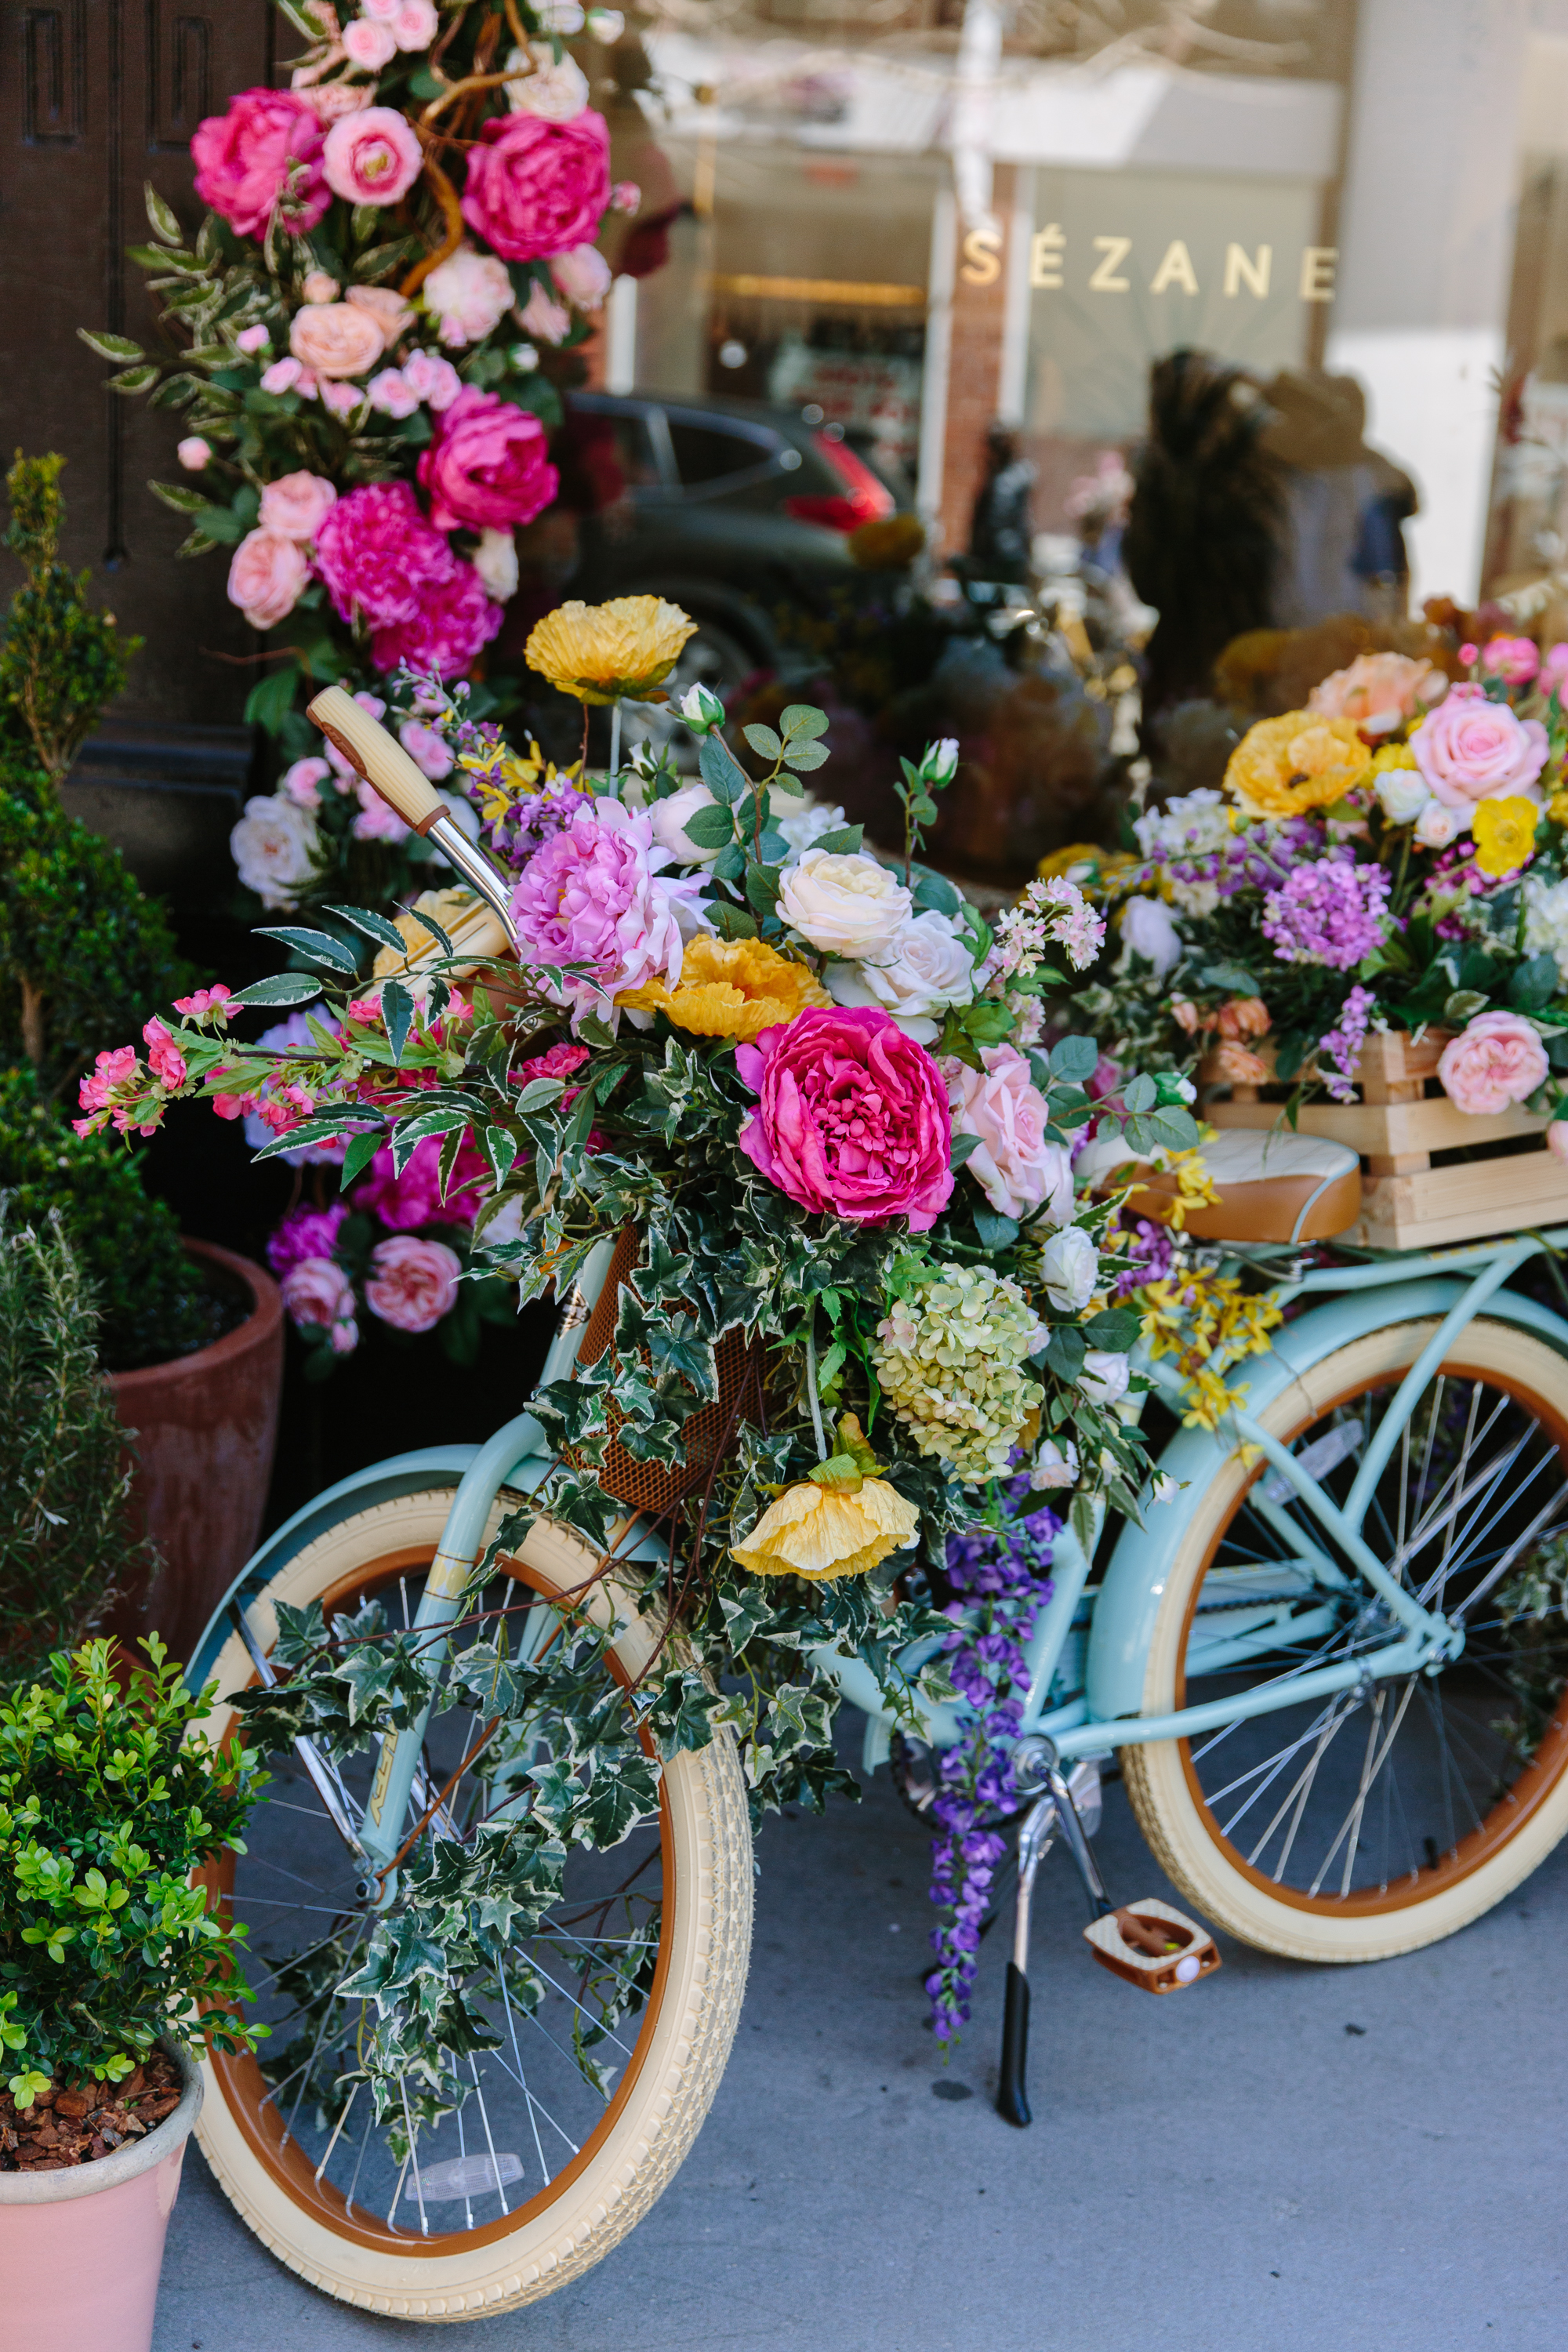 Sezane NYC Floratorium spring storefront bicycle with flowers in basket